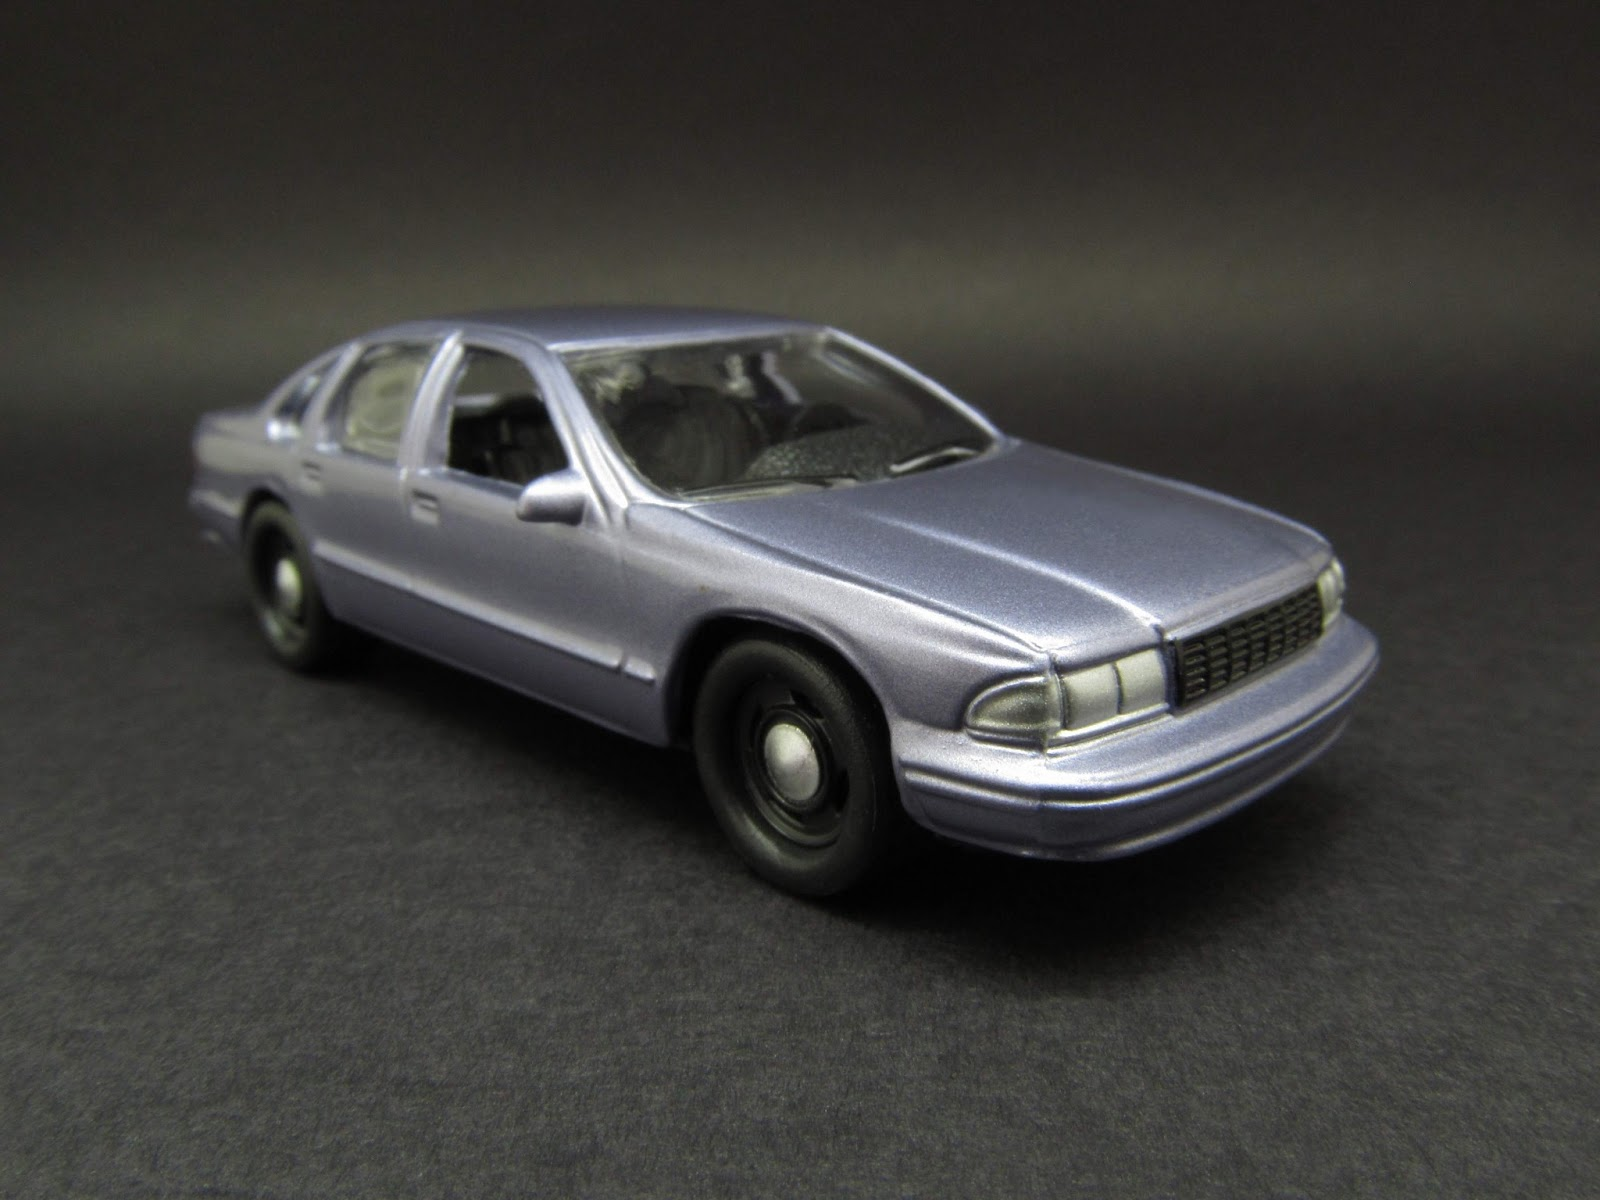 Diecast hobbist 1995 chevrolet caprice 164 scale diecast from johnny lightning forever 64 release 27 publicscrutiny Choice Image